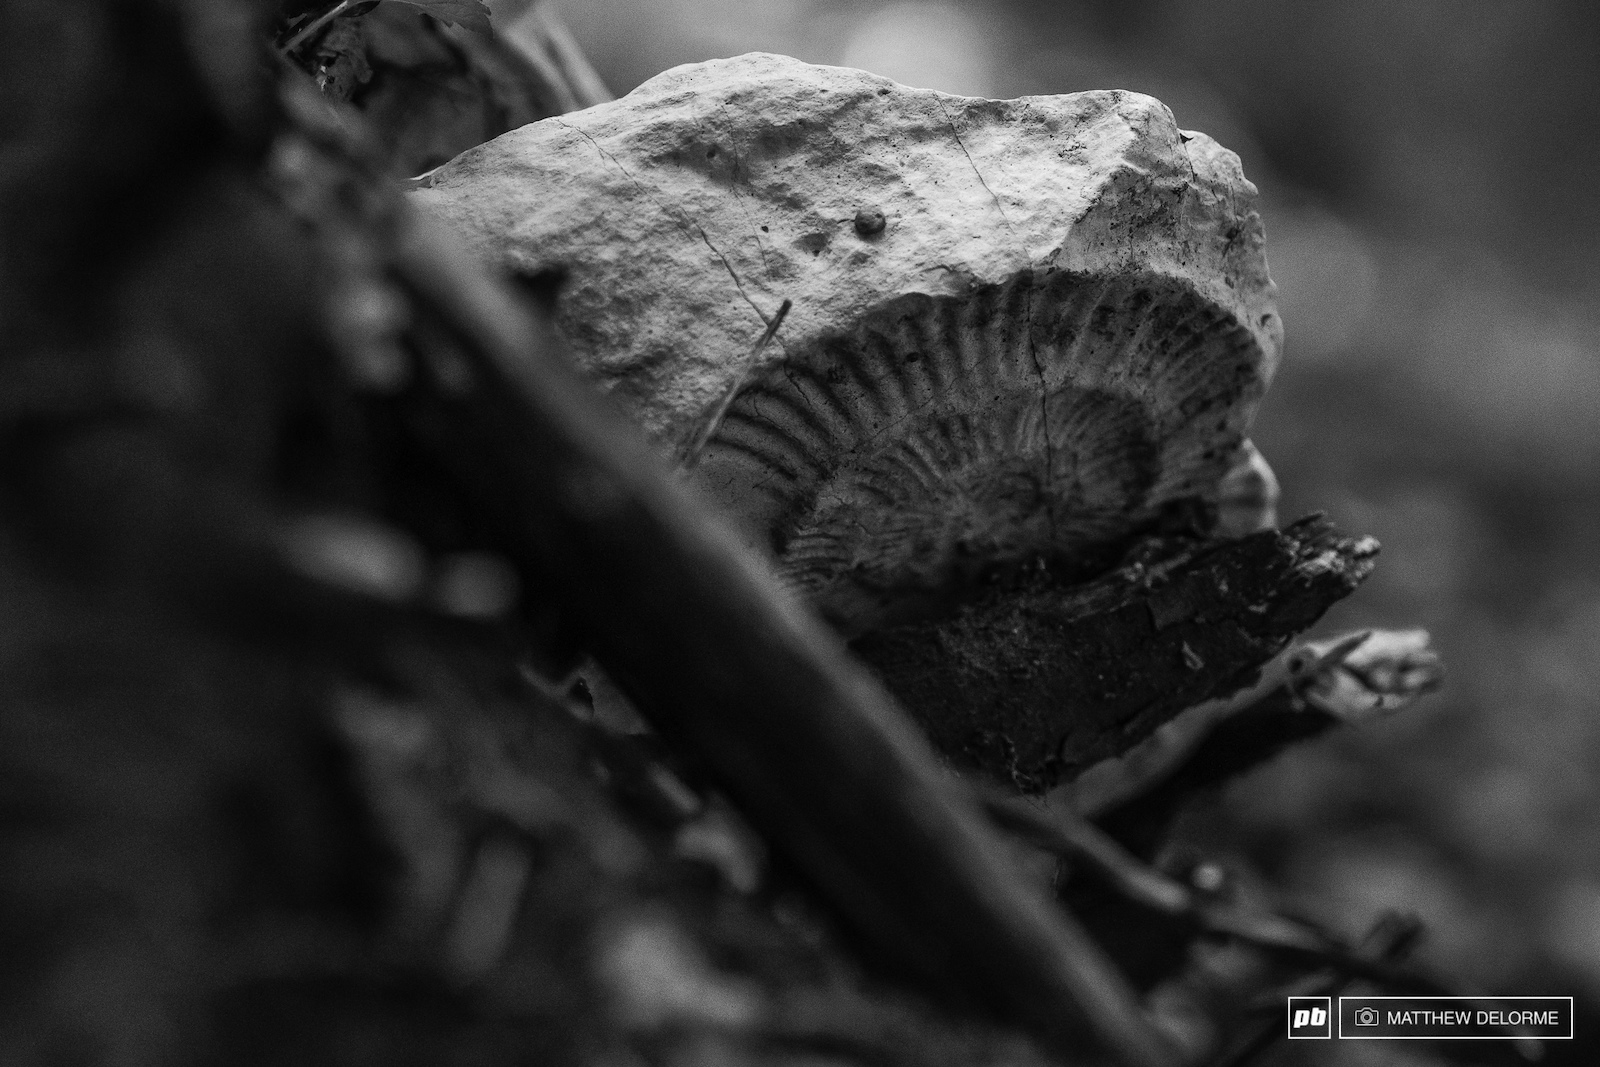 There are fossils everywhere through out the woods.